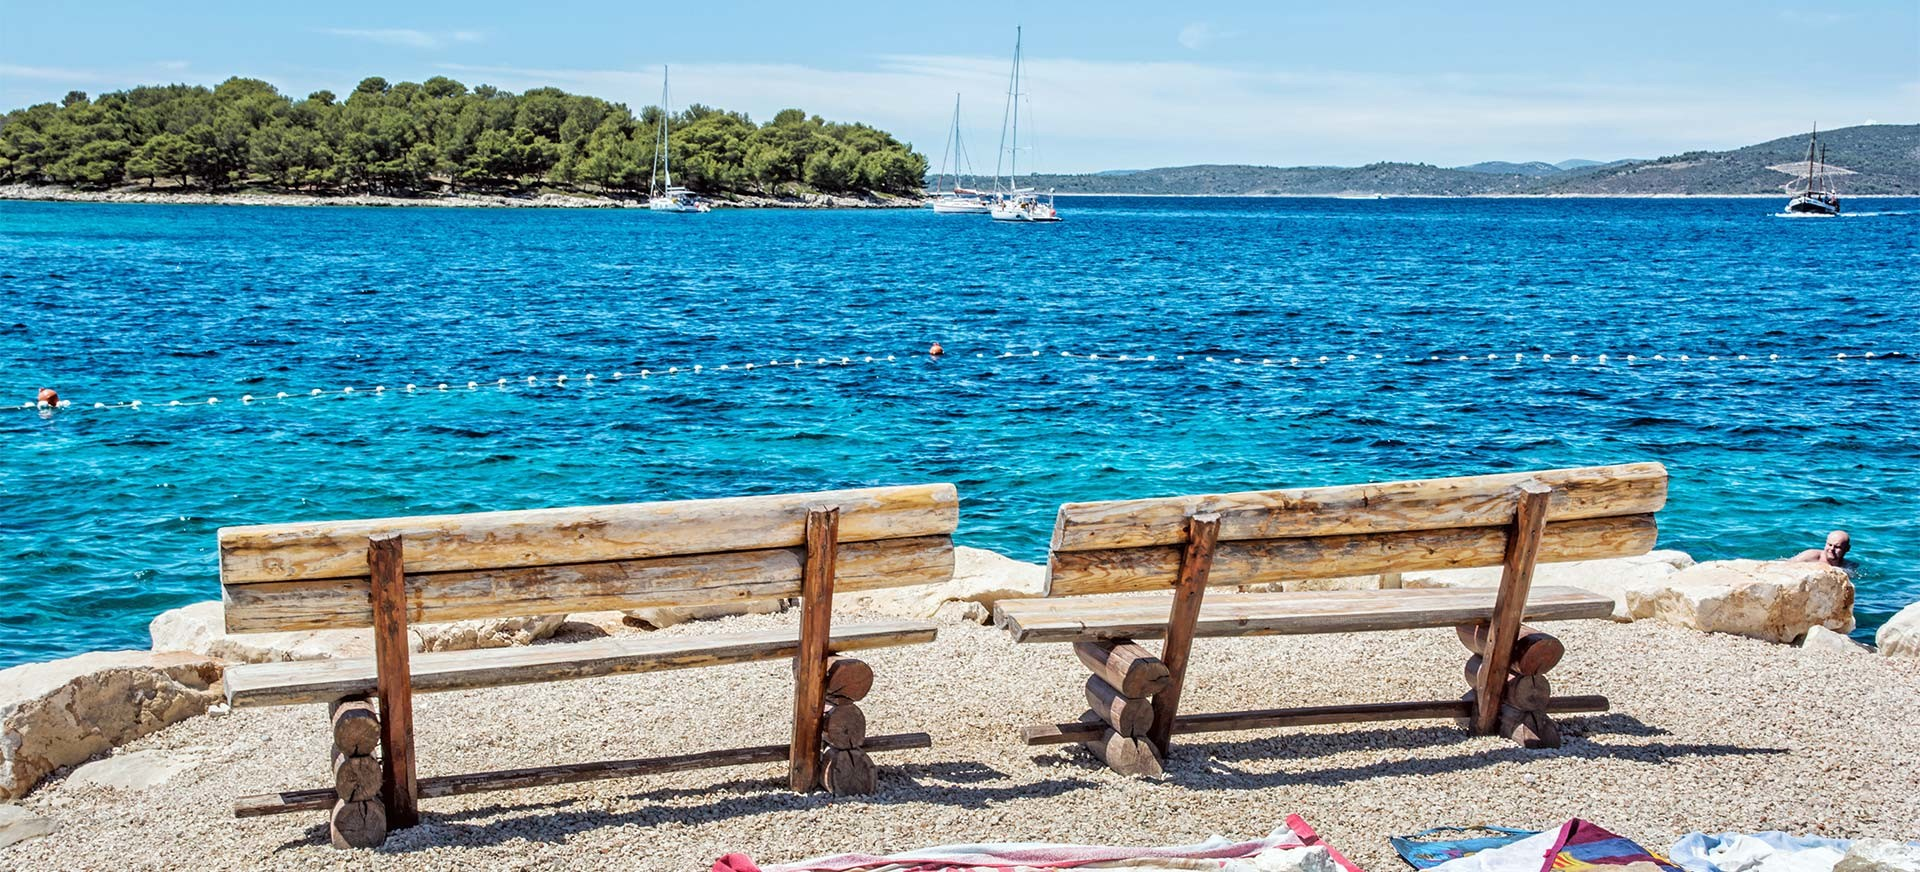 10 must see places during your sailing trip in Croatia